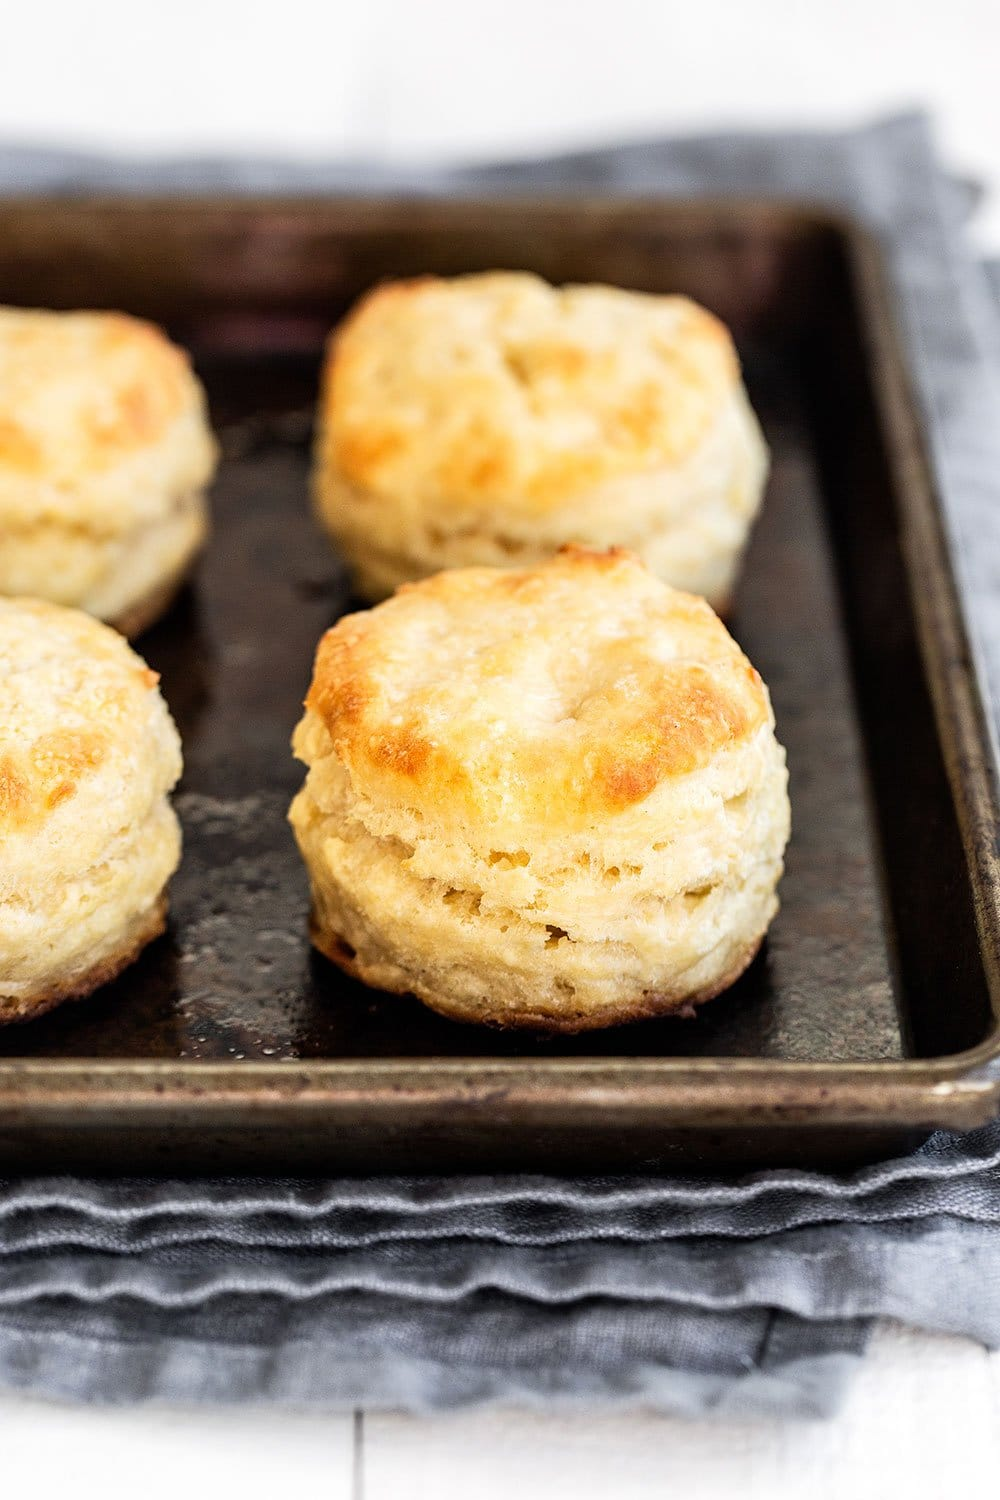 Tray of baked biscuits